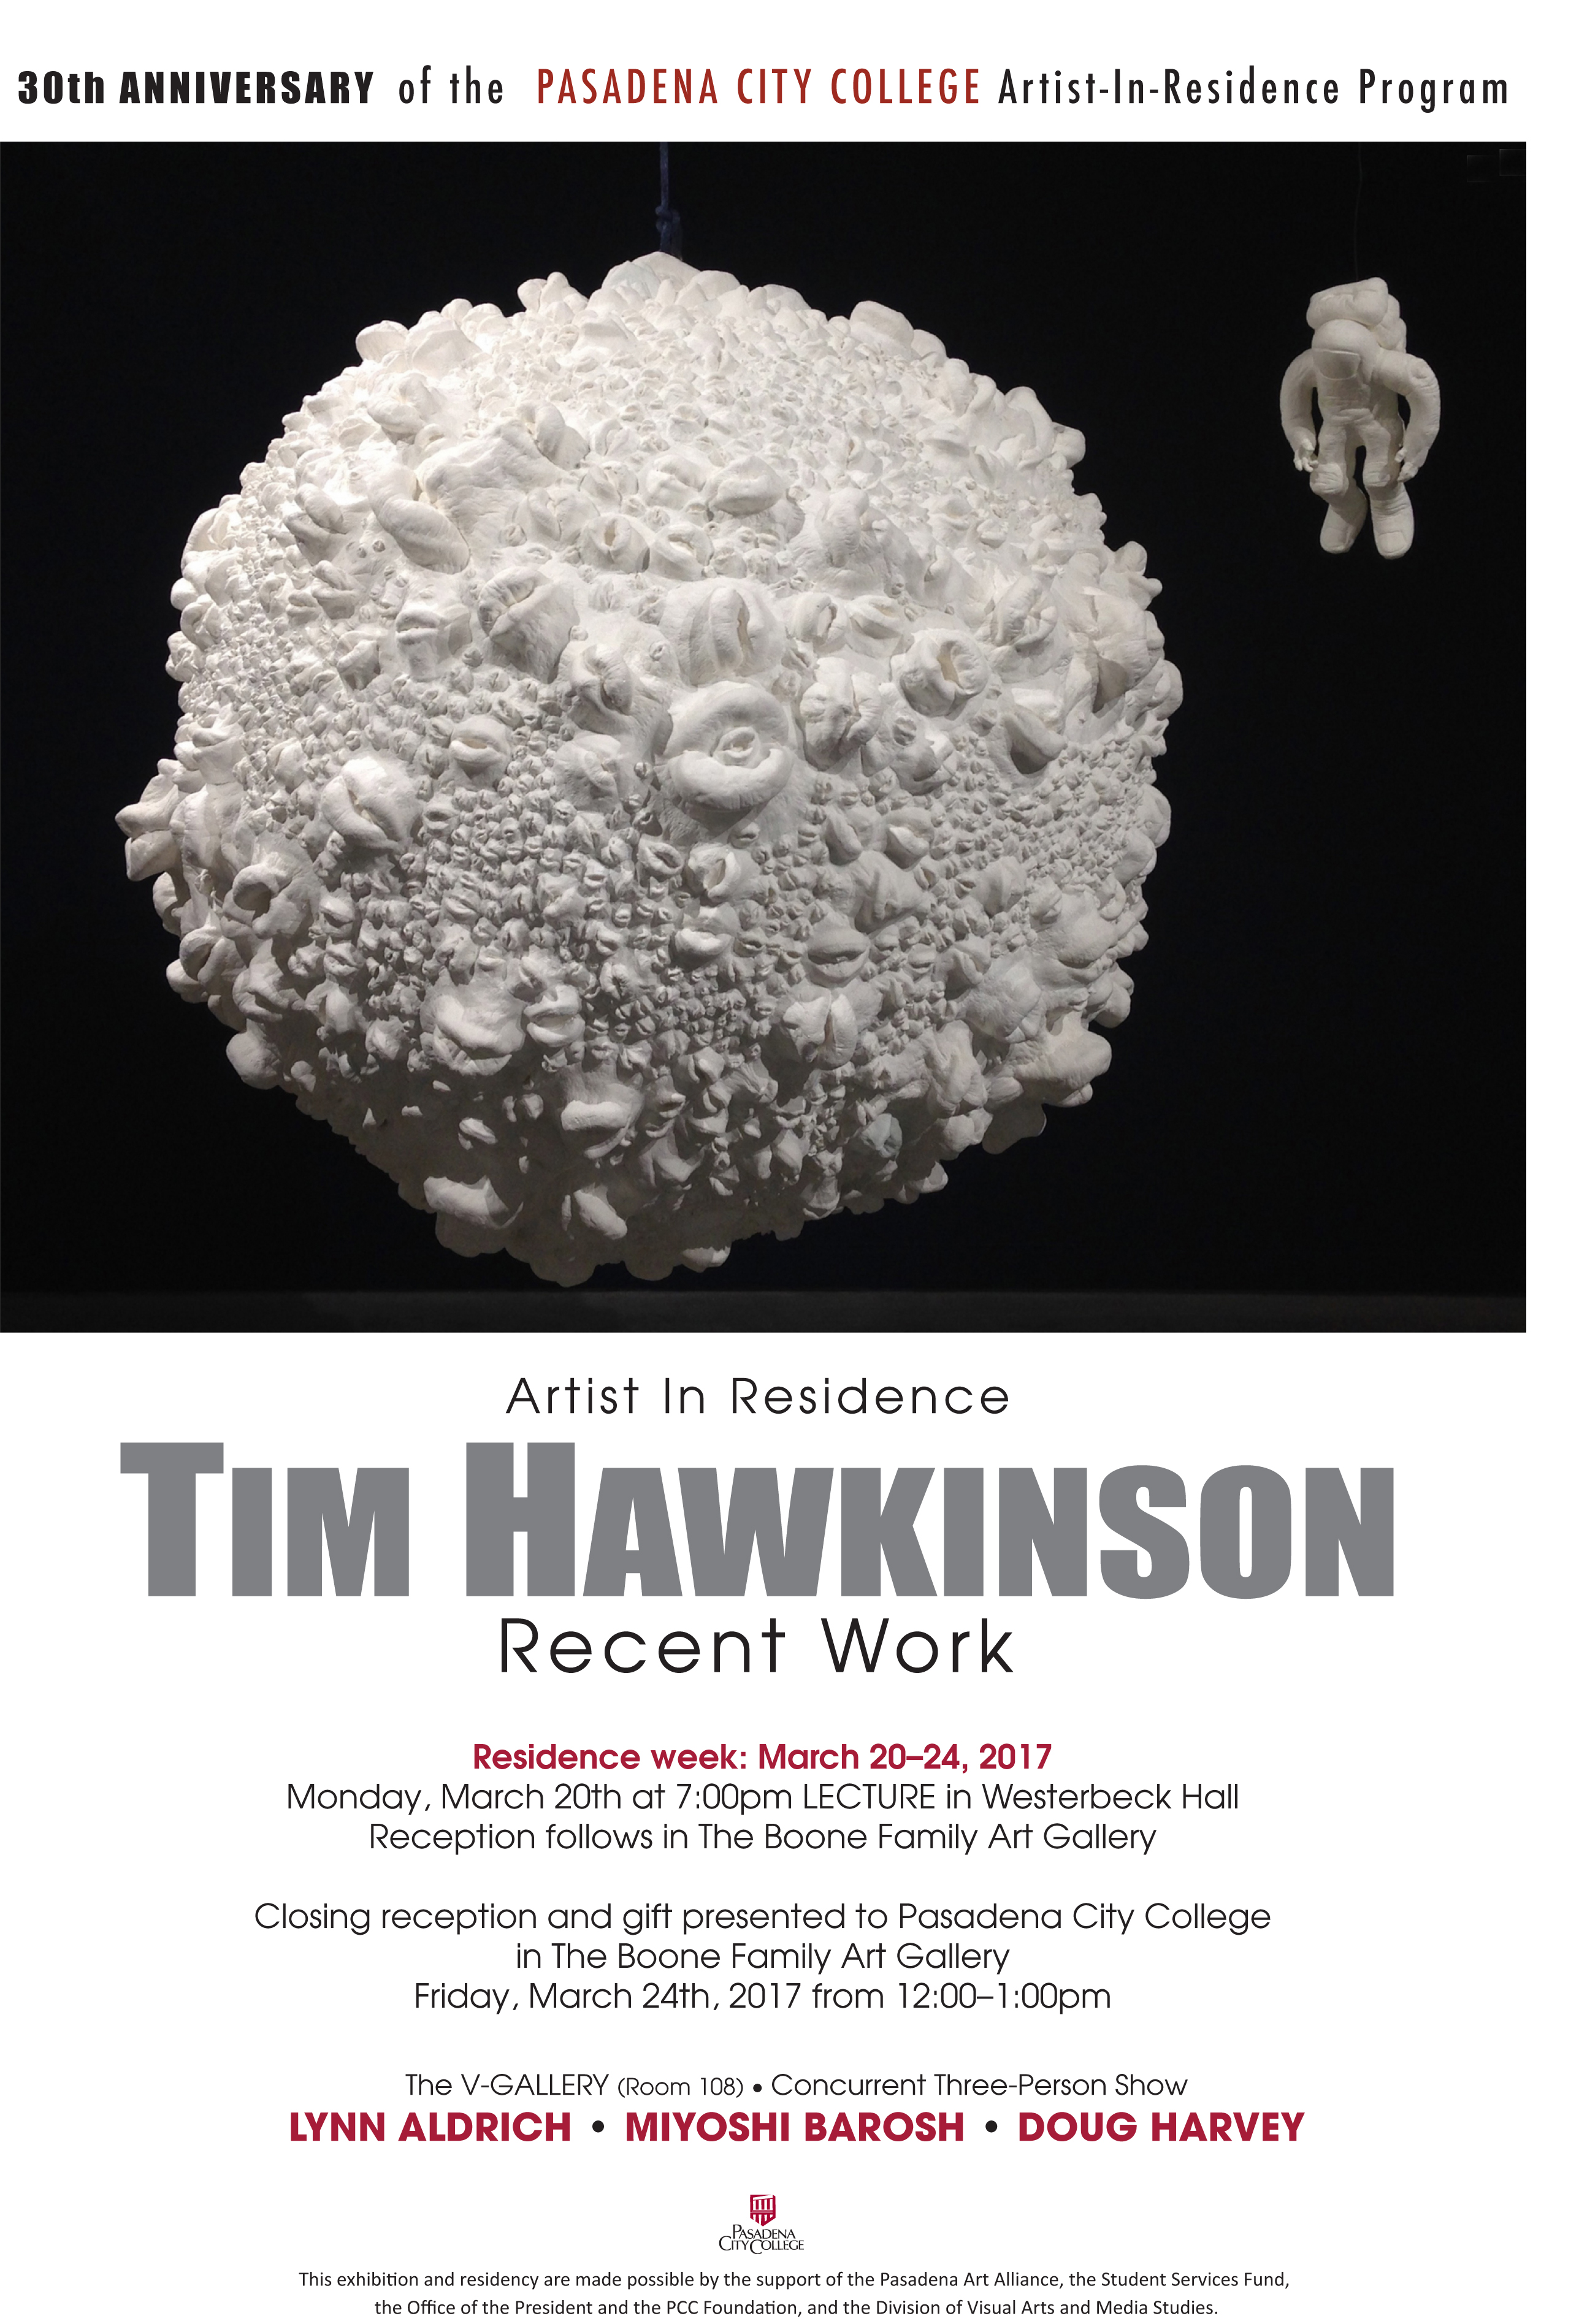 "Tim Hawkinson Recent Work poster with Thumbsucker image. Poster text reads as follows: ""Tim Hawkinson: Recent Work"" Pasadena City College Boone Family Art Gallery Show runs February 21 – April 14, 2017 Reception: Friday, March 10, 6-10 pm, Pasadena ArtNight  Artist-in-Residence week is March 20 - 24, 2017      Mon, March 20, 2017, 7:00 pm: Artist lecture, reception to follow in Boone until 9:00 pm     Friday, March 24, 2017, 12:00-1:00 pm: Closing reception/ gift presented to college"